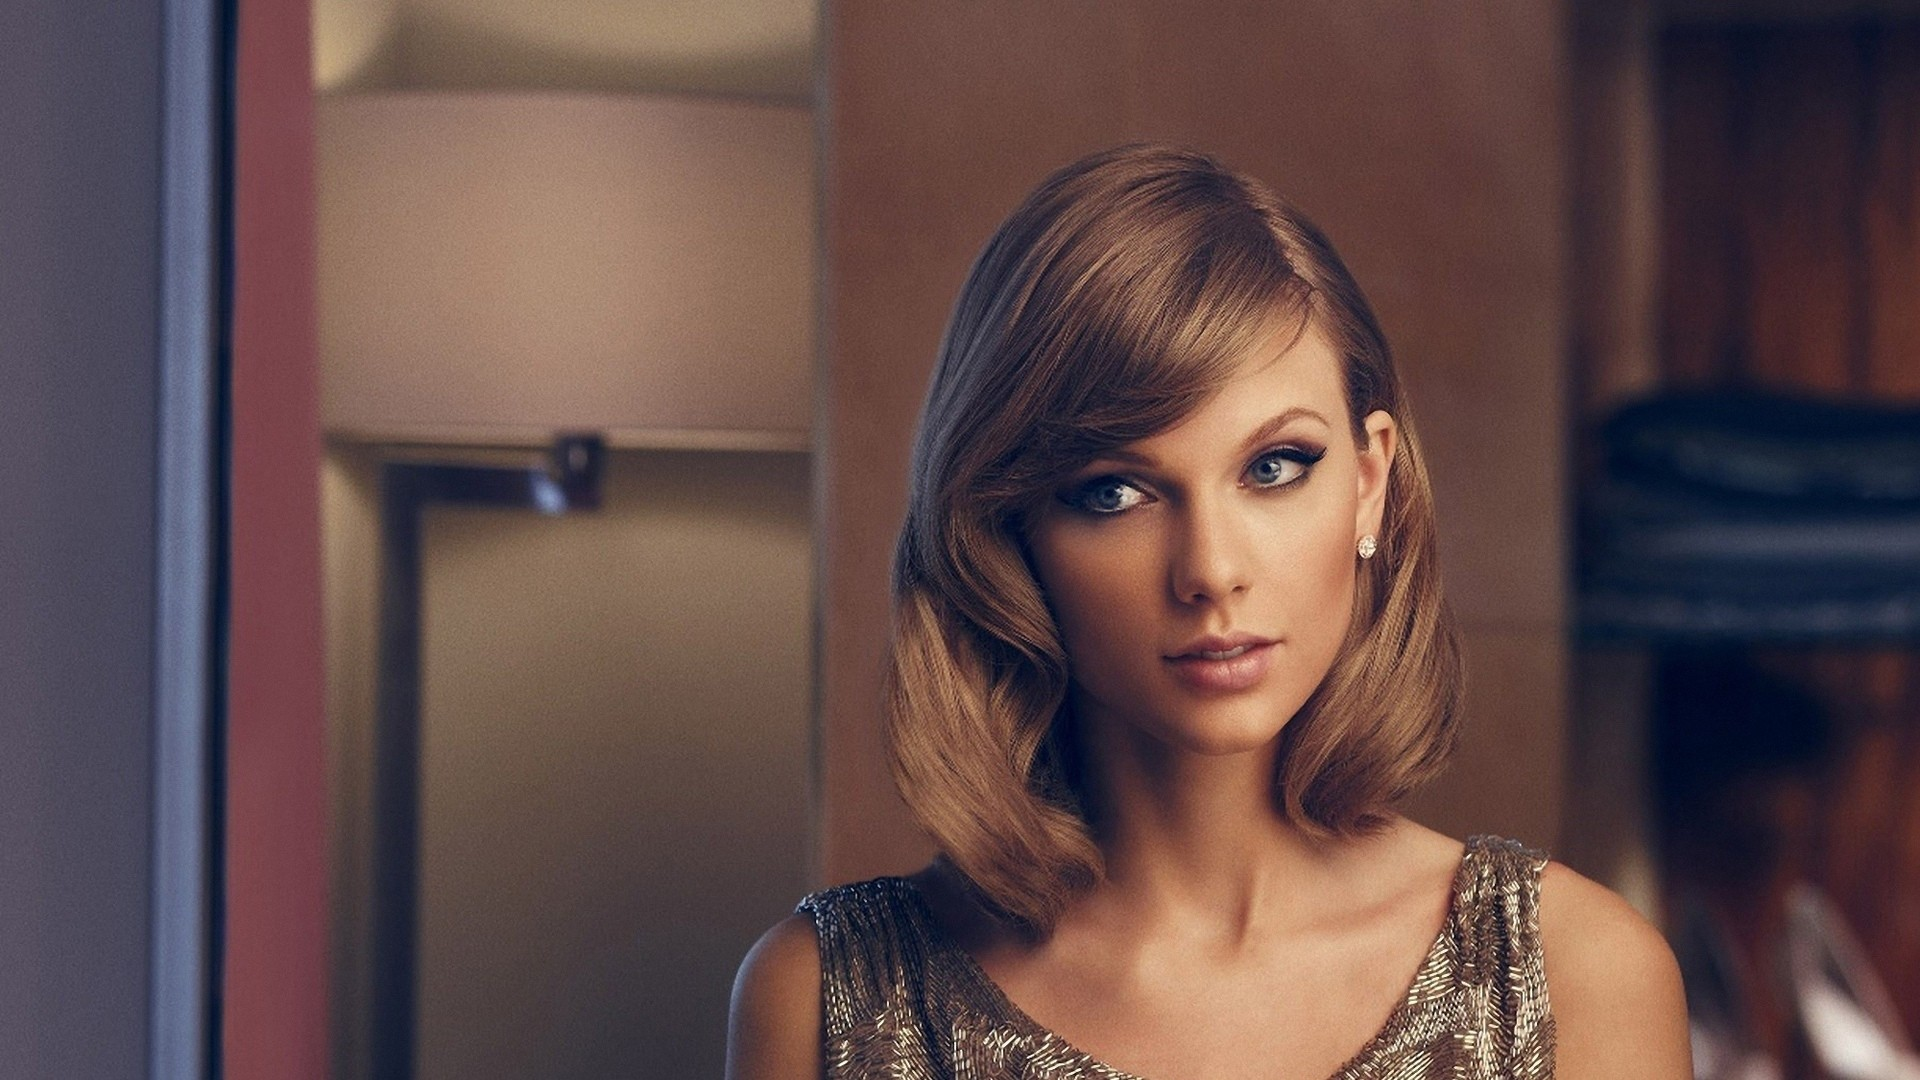 Taylor Swift Wallpaper Picture hd